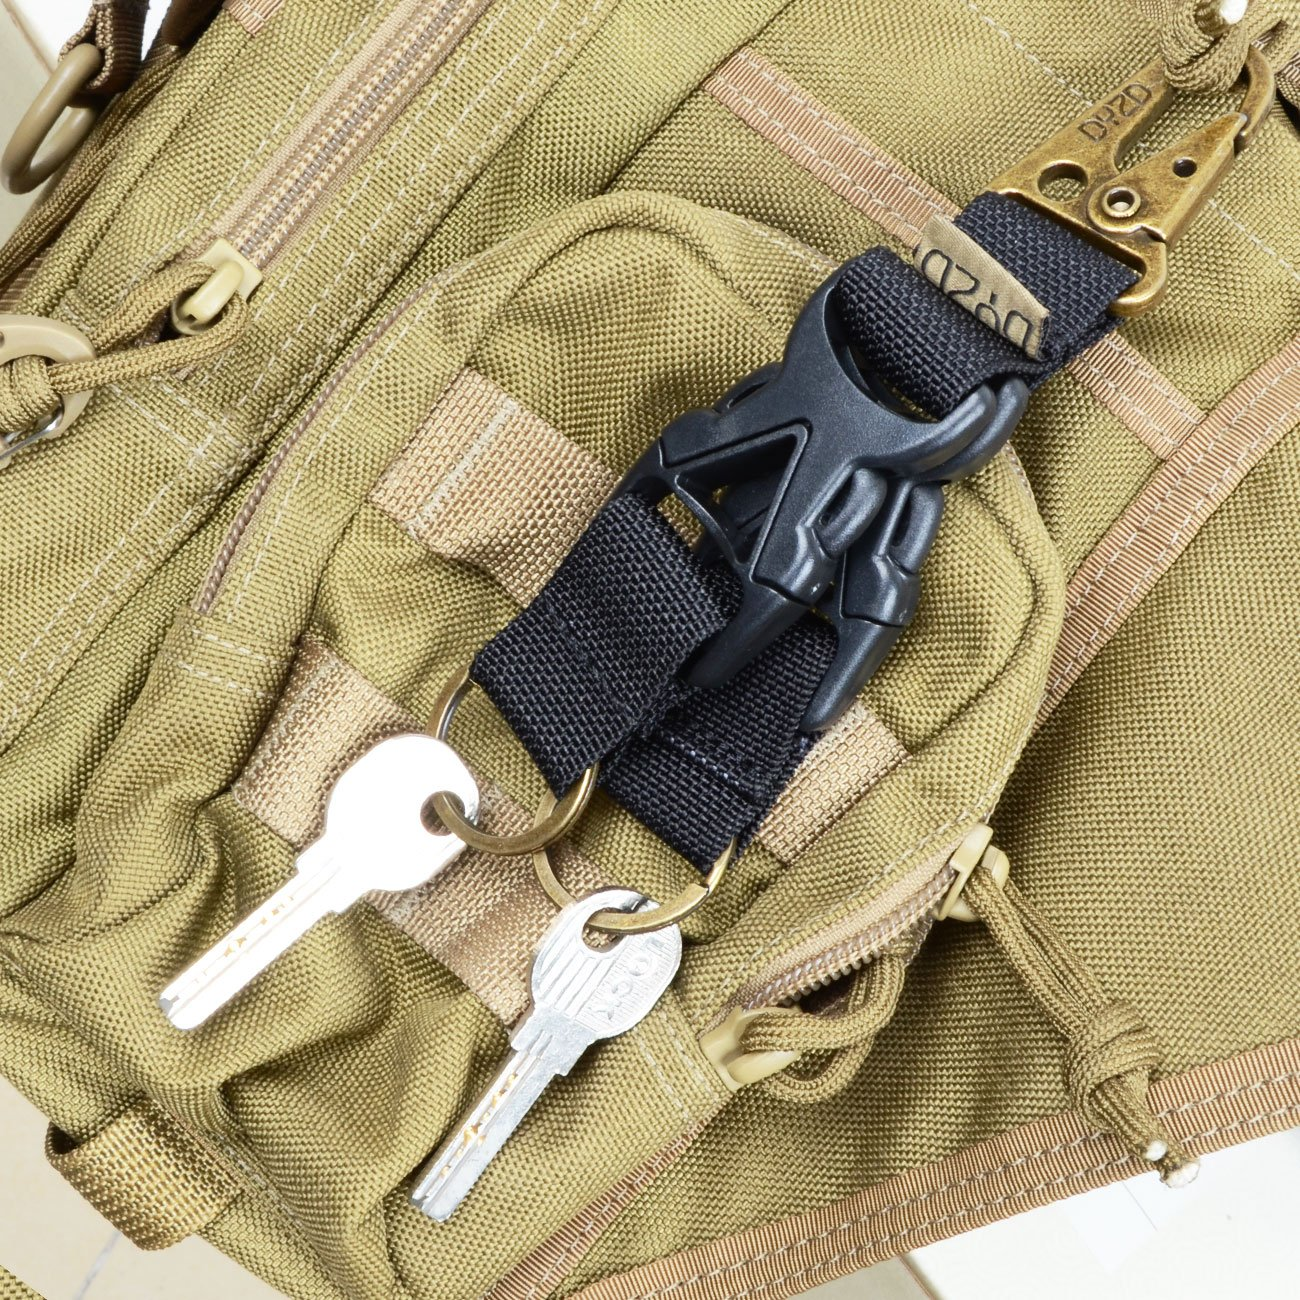 DYZD Tactical Gear Keychain Carabiner Survival 100/% Nylon Webbing Key Chain Tactical Key Holder Quick Release Buckle with Key Ring